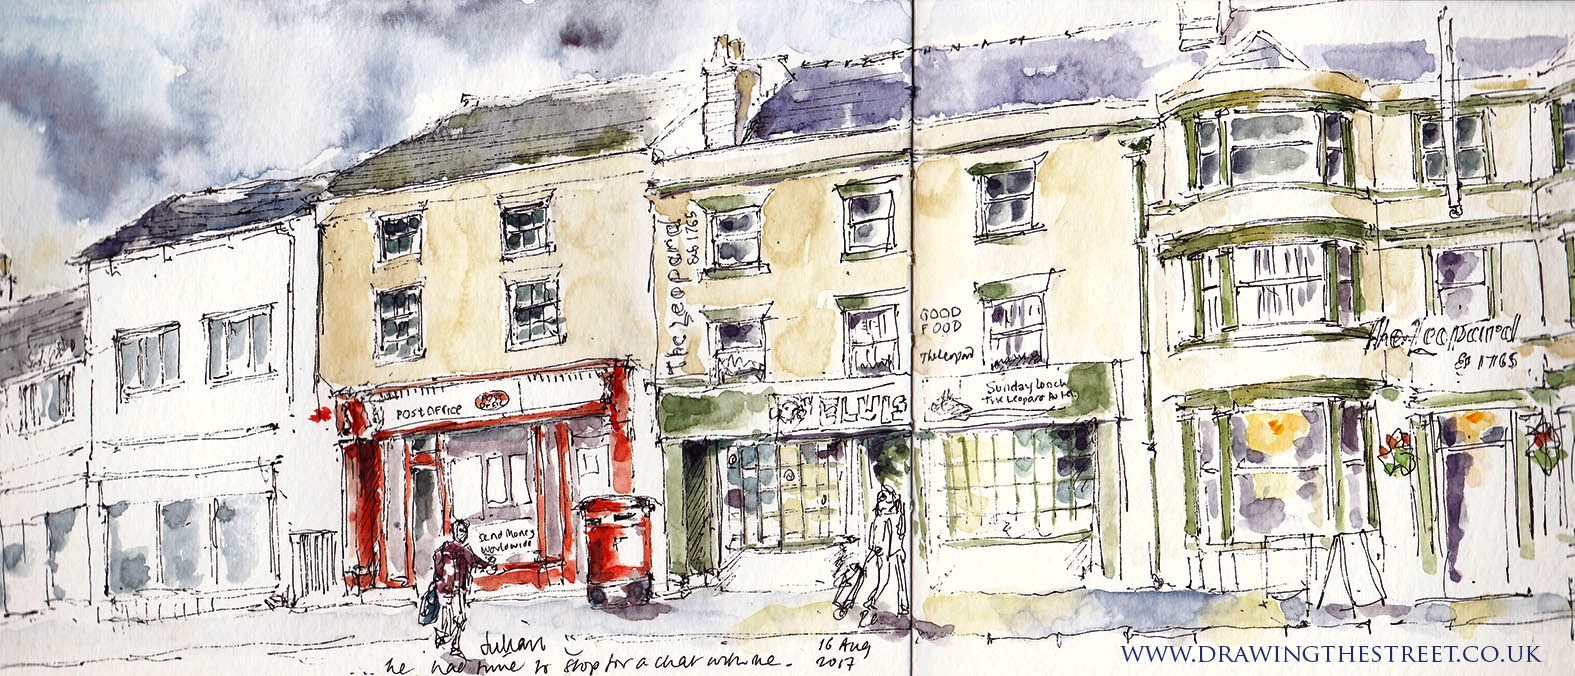 urban sketch of the Leopard Burslem